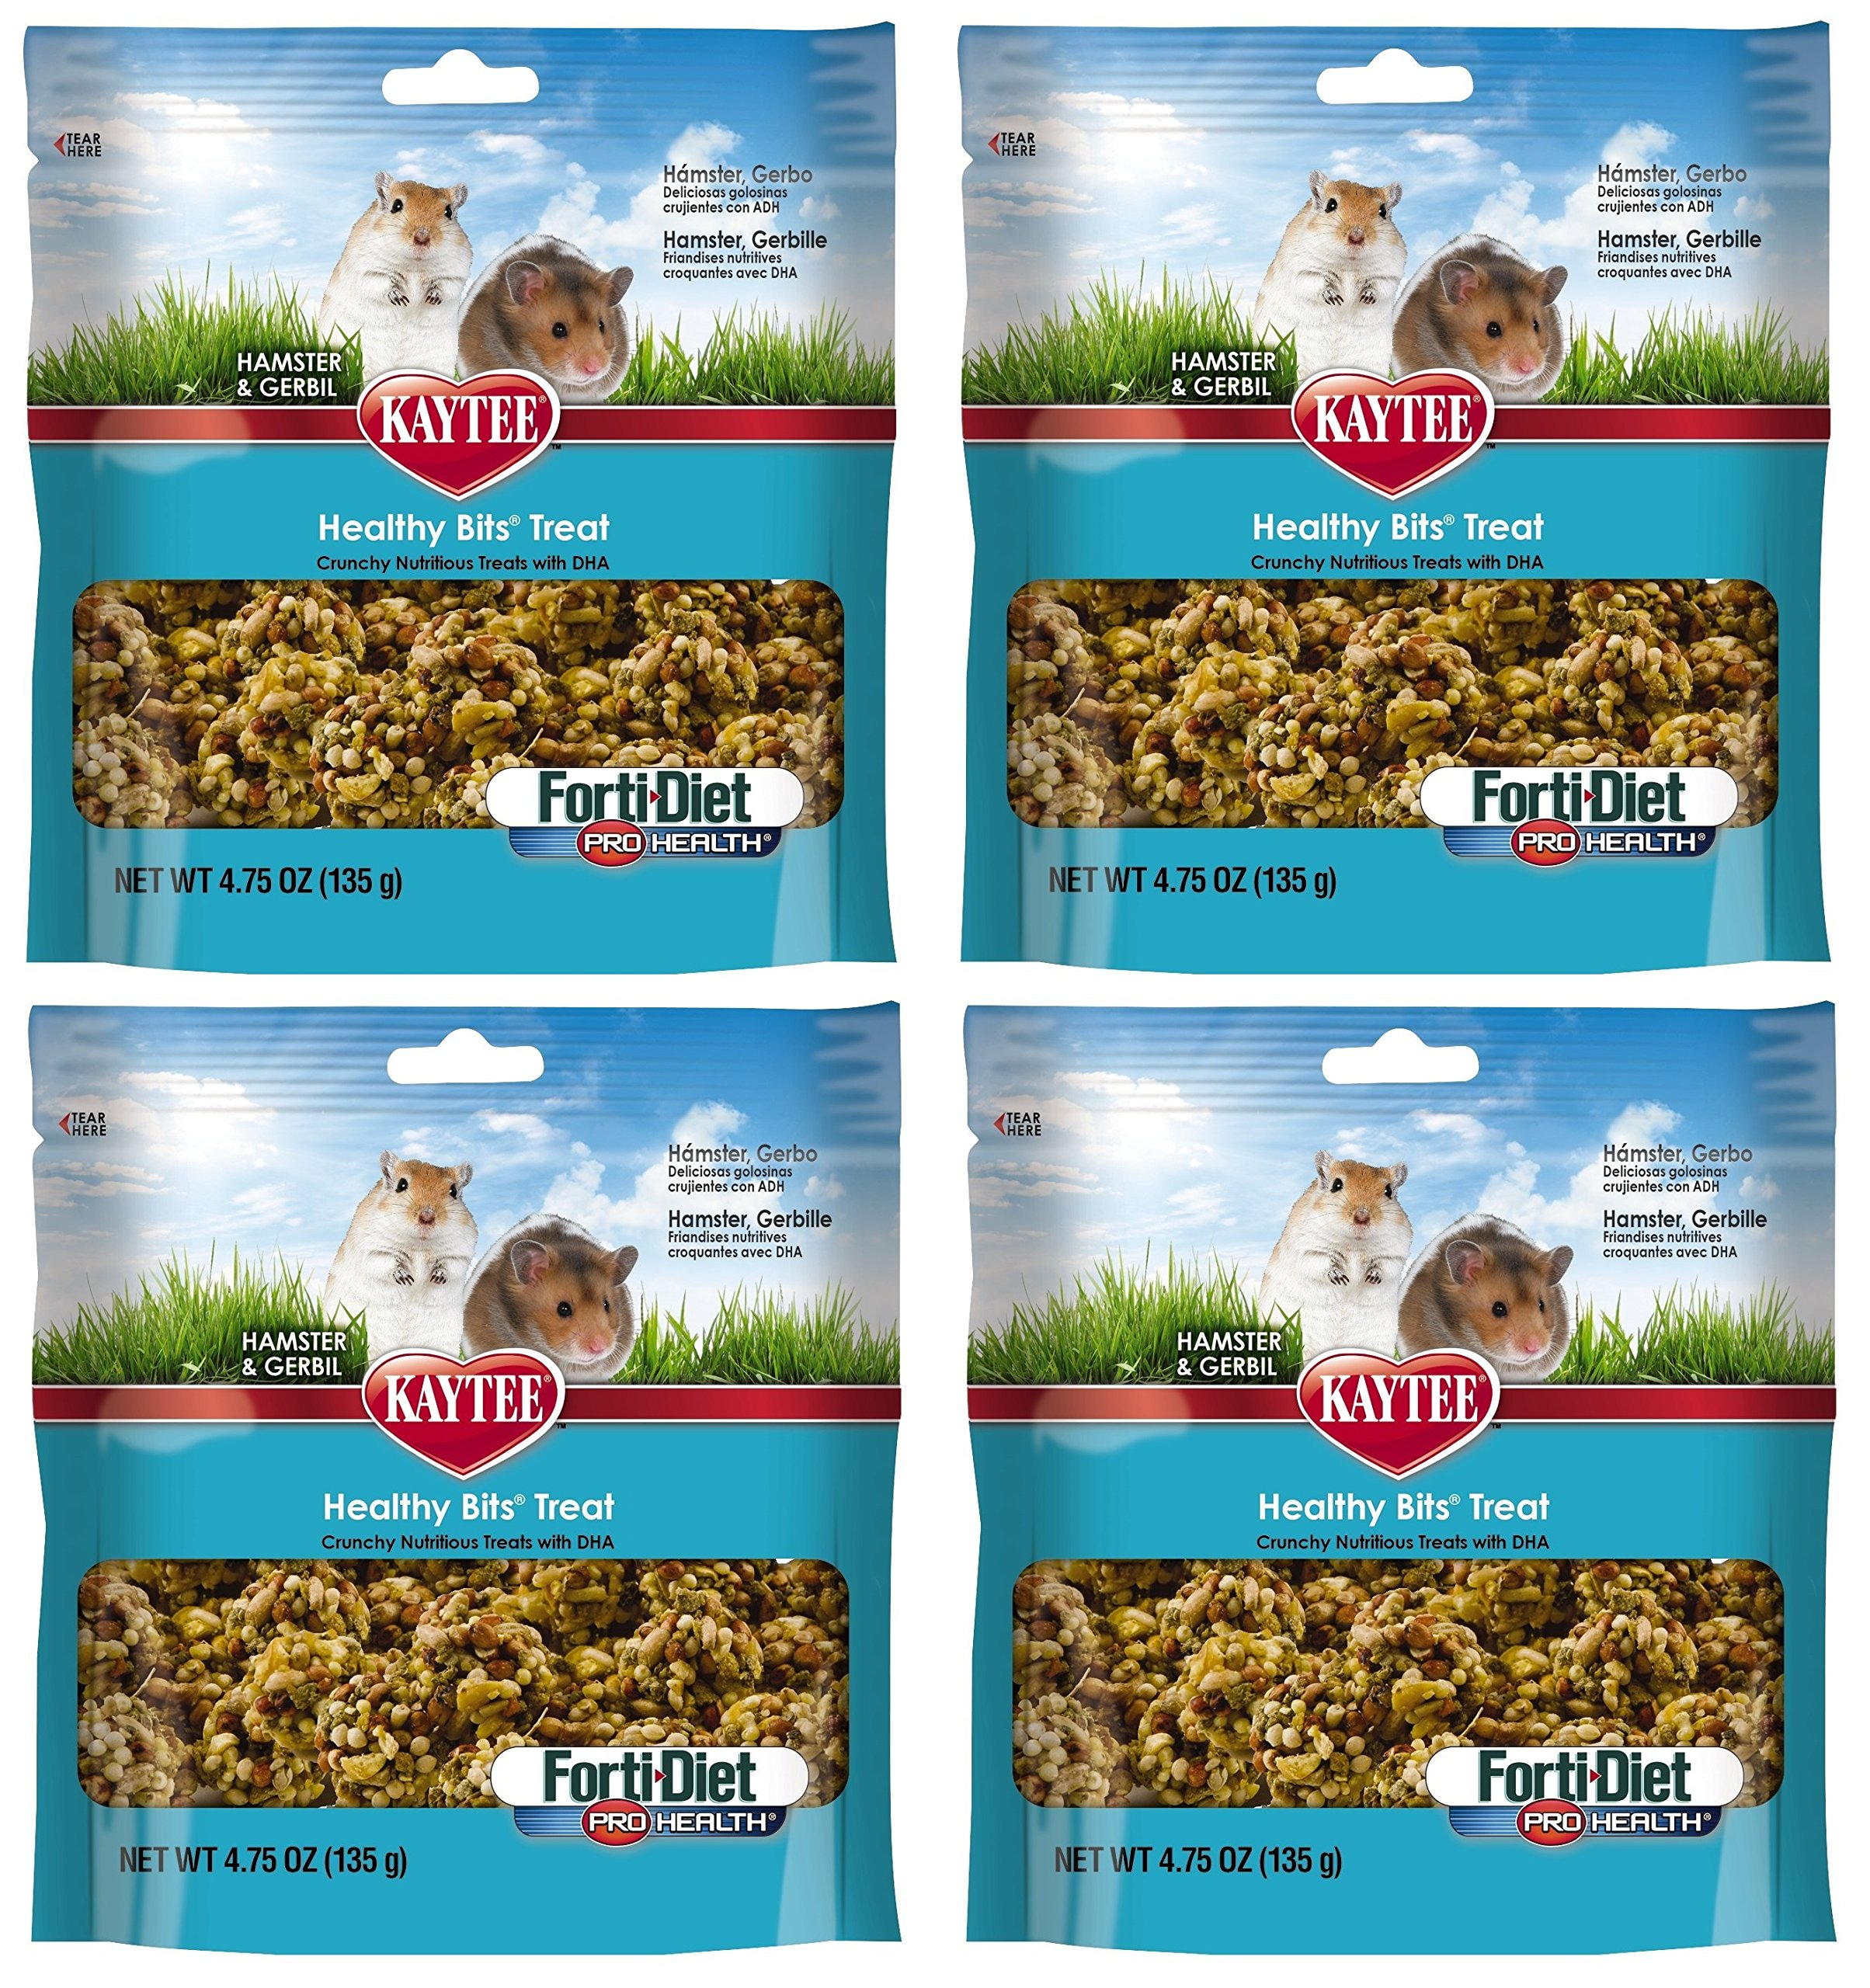 Kaytee Forti Diet Healthy Bits Treat, 19 Ounces, for Hamsters and Gerbils